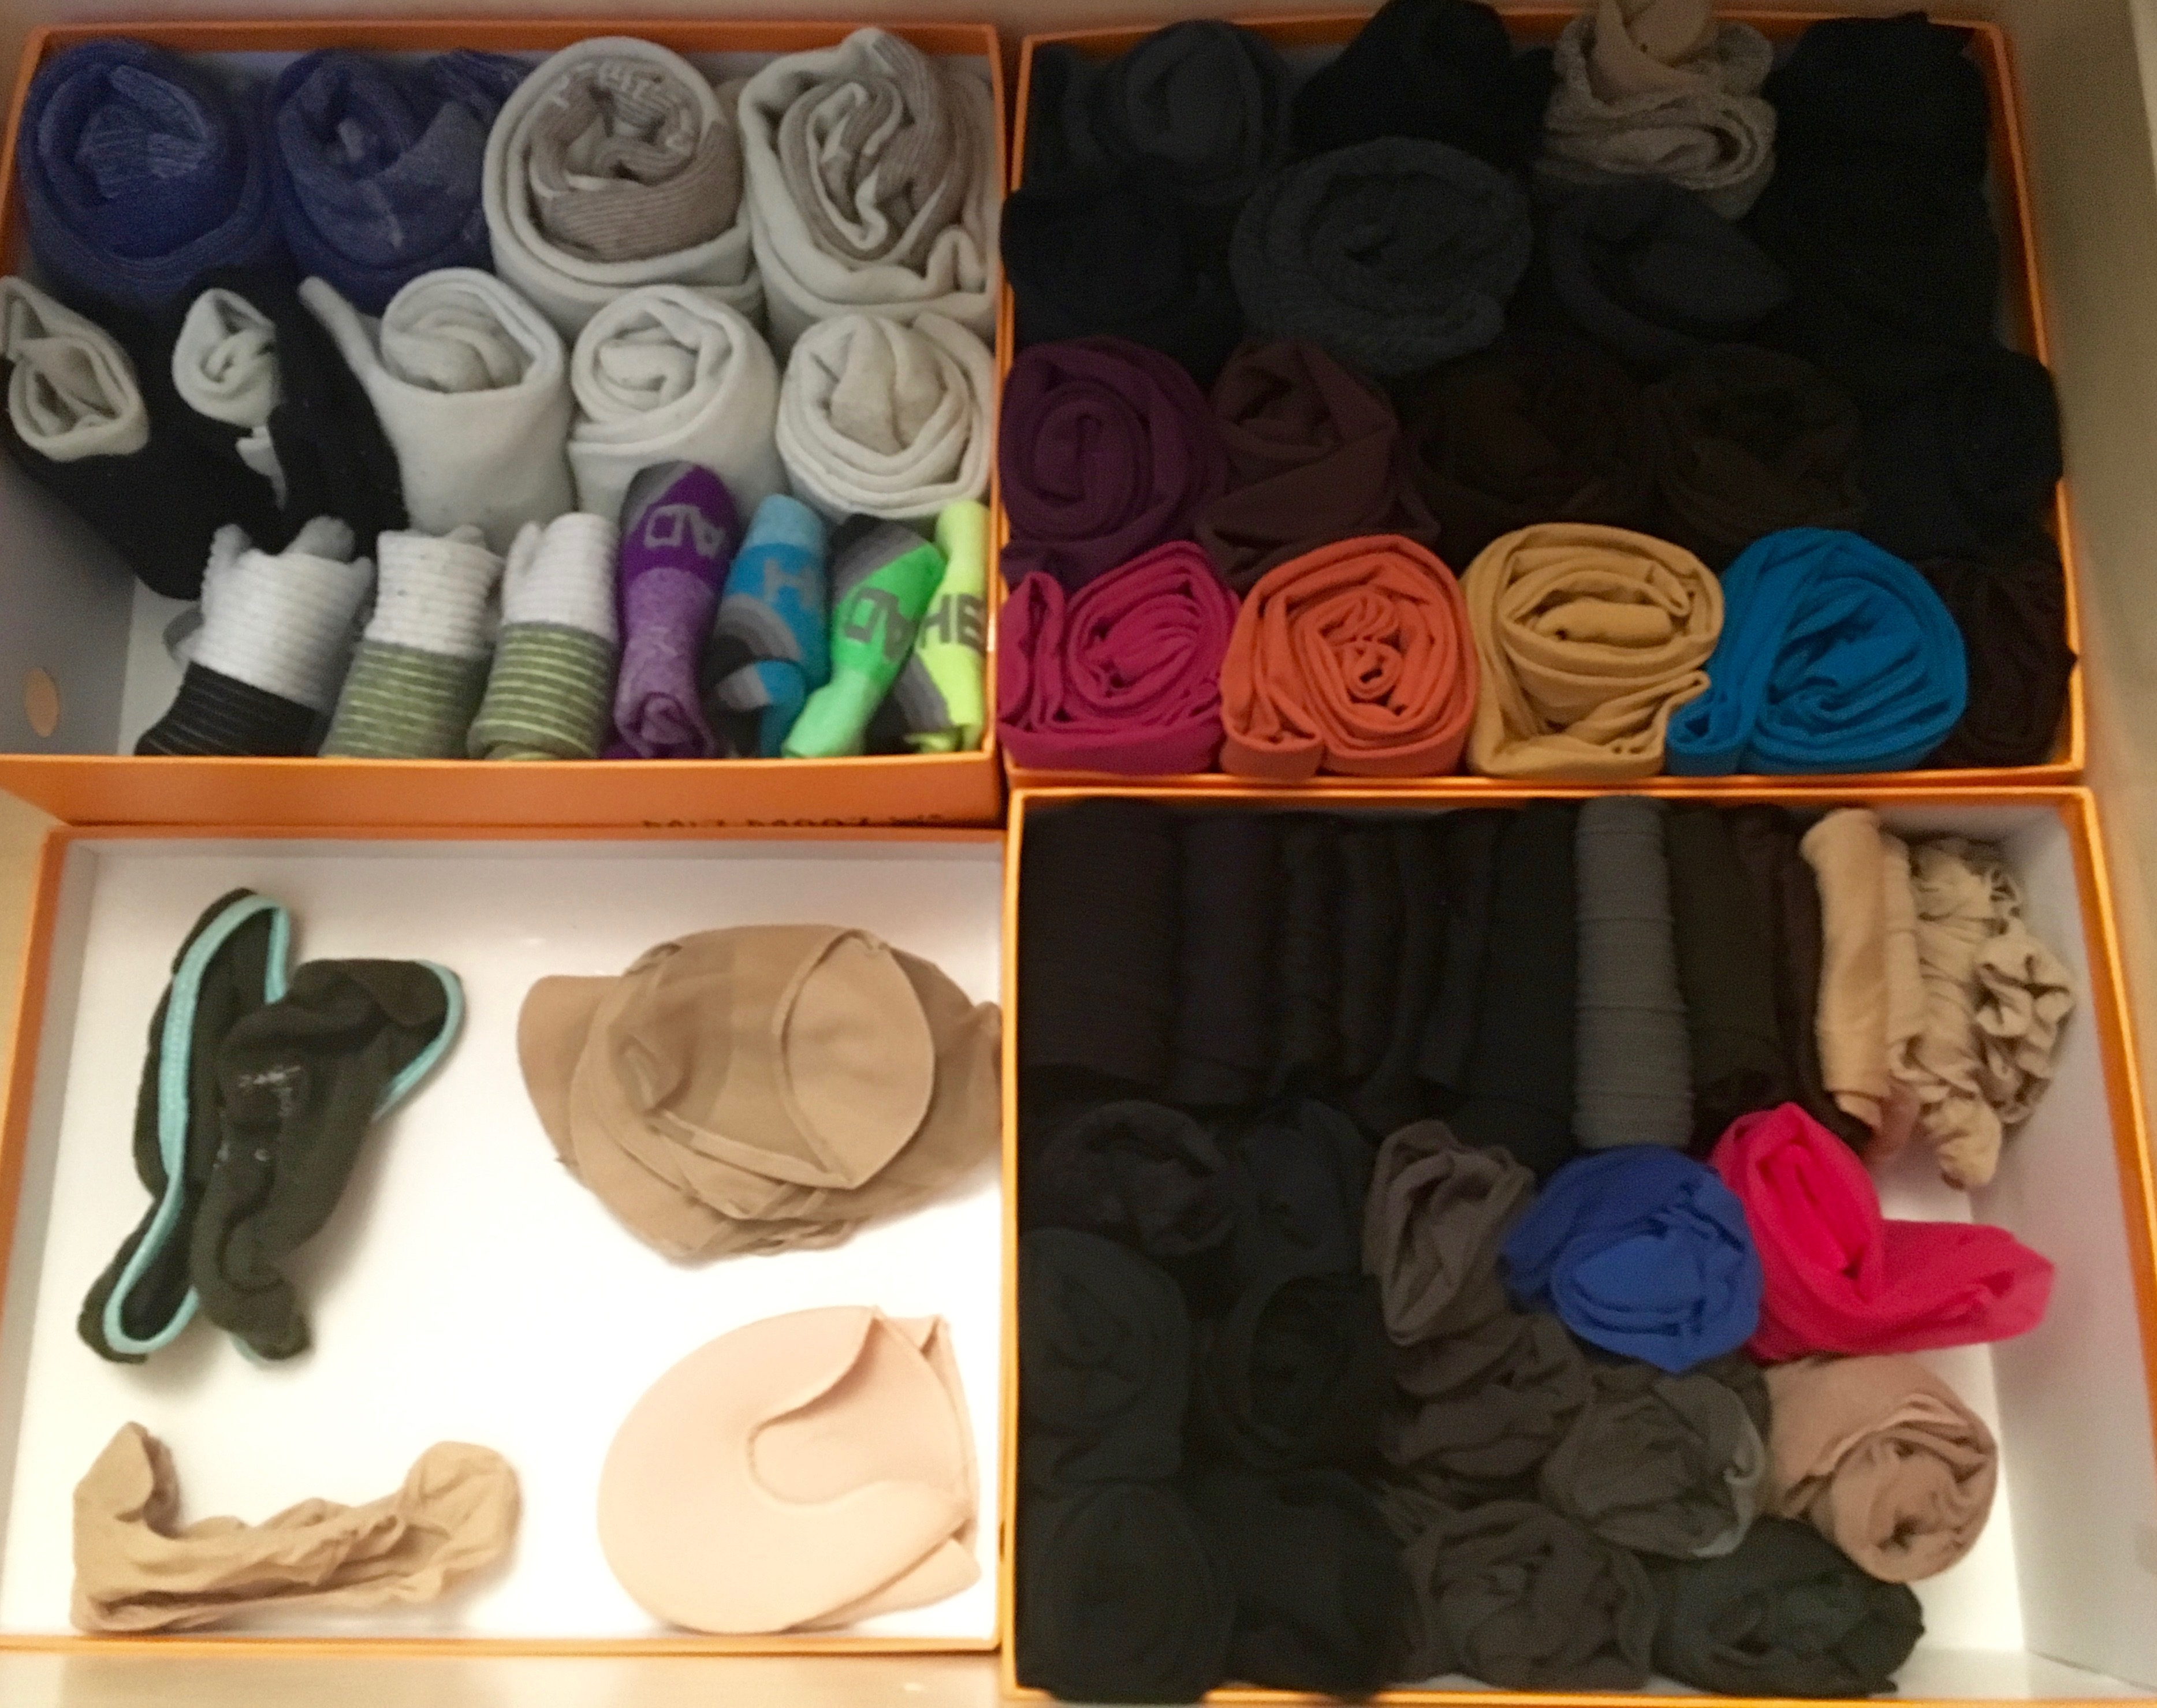 konmari clothing category subcategory socks in drawer